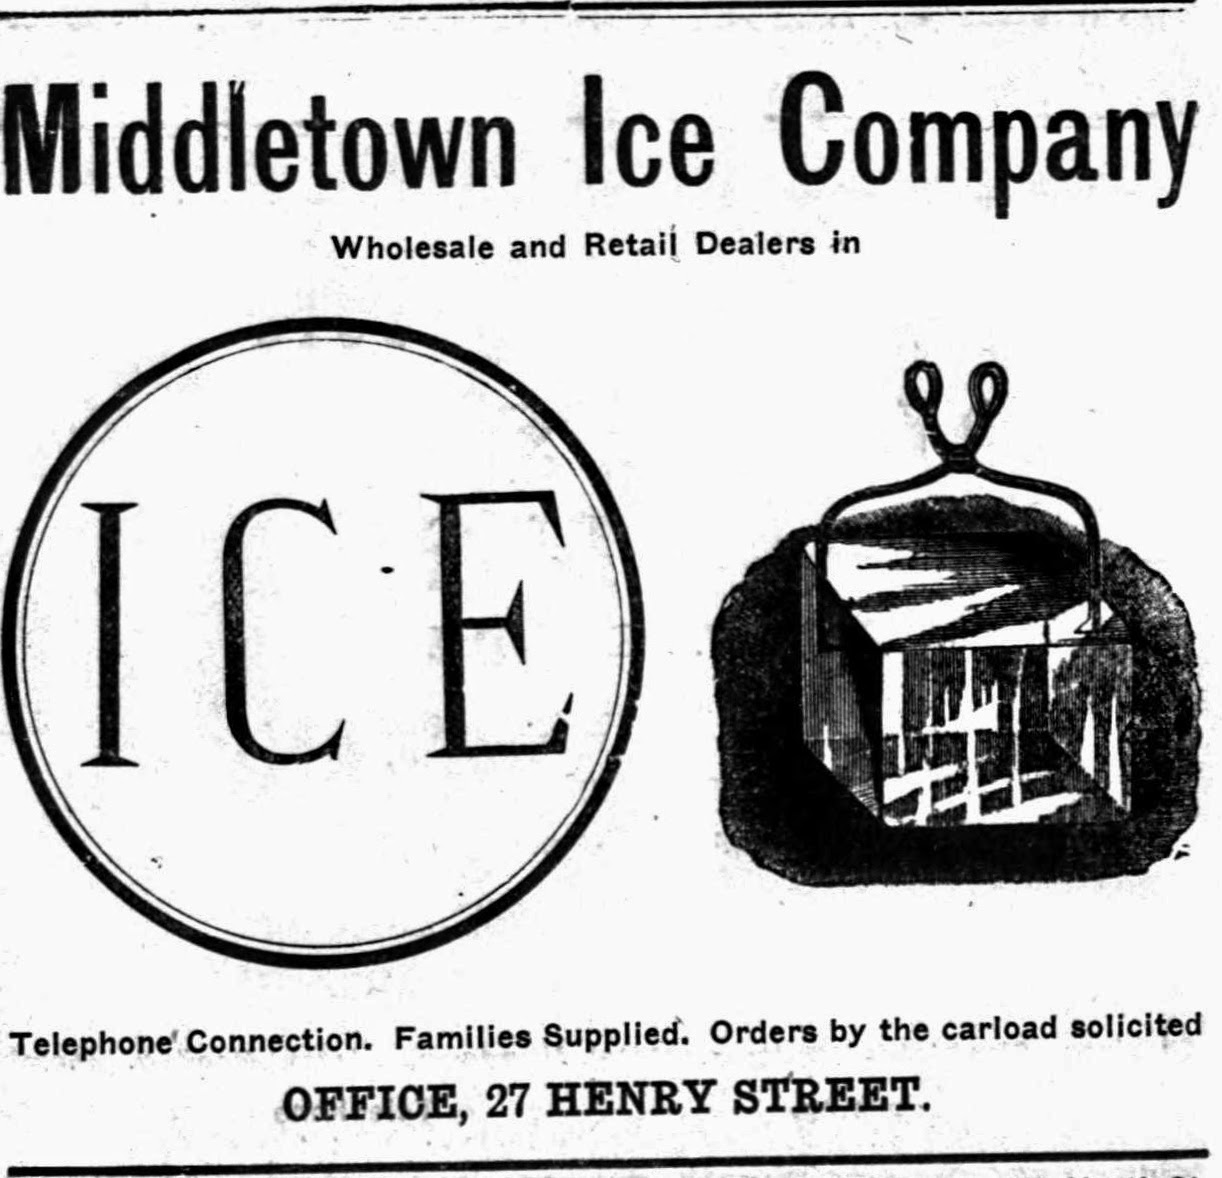 Middletown Ice Company 1915 Advertisement, Middletown City Directory